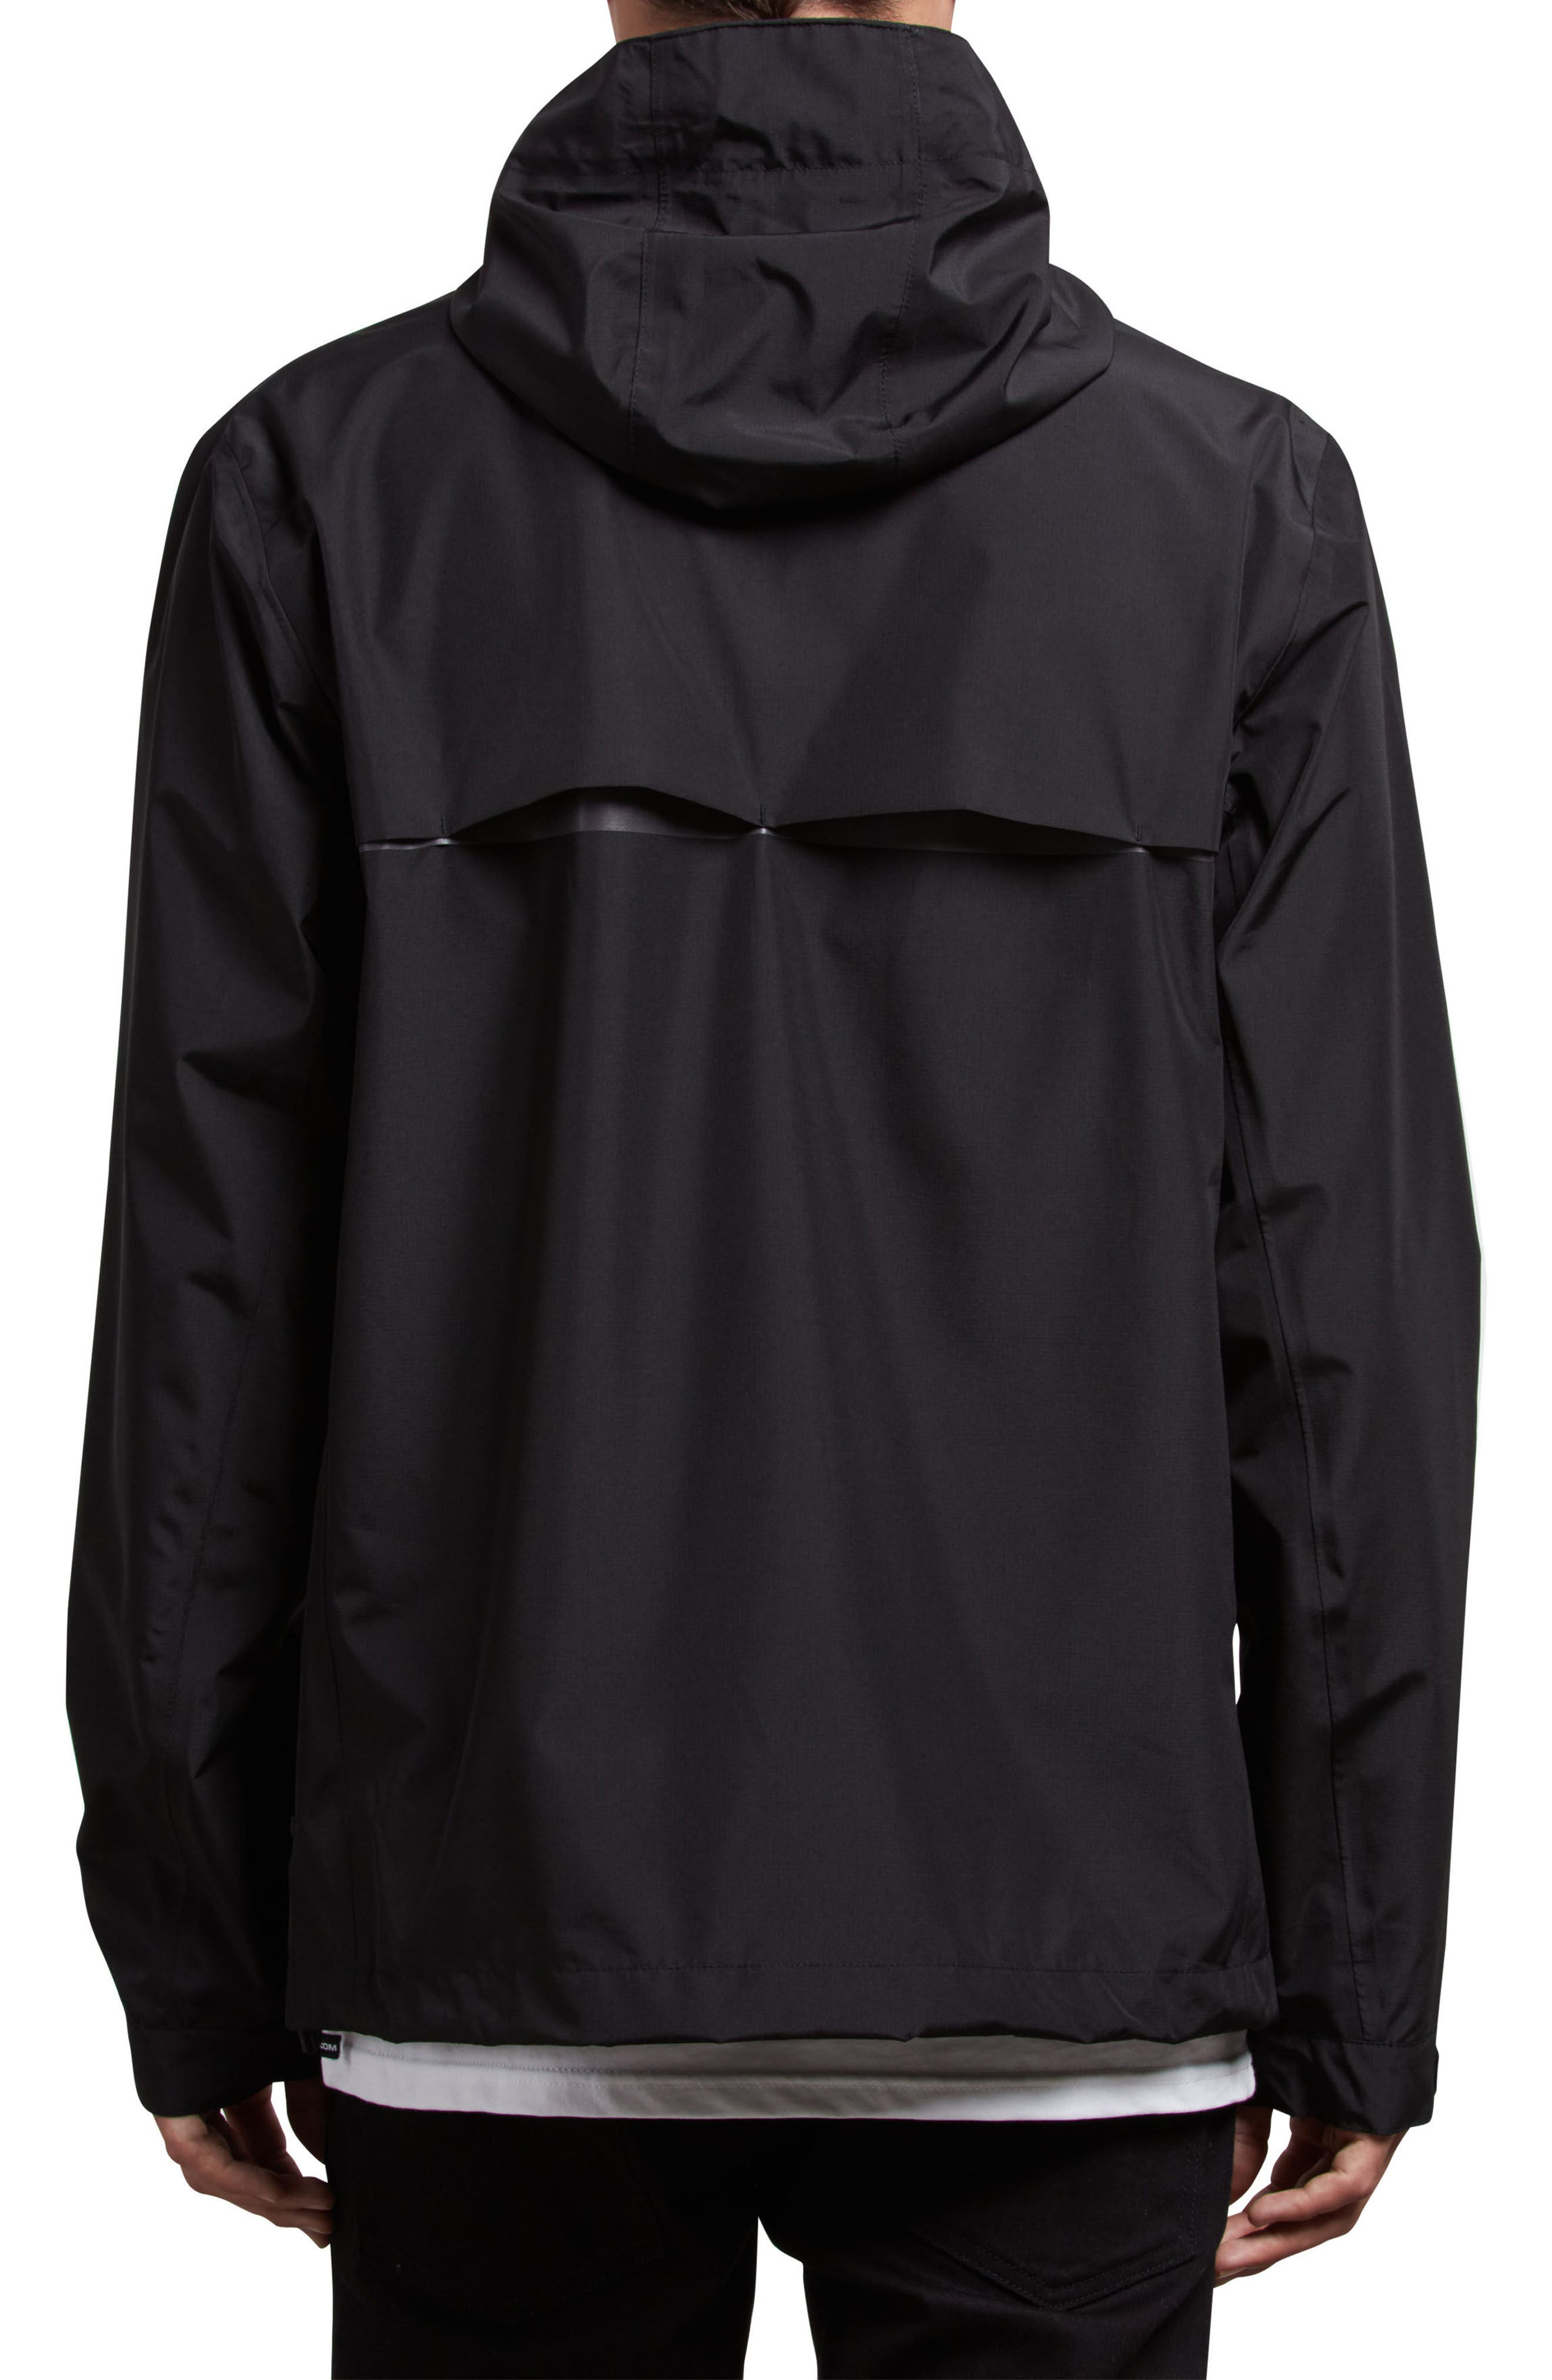 Stone Storm Jacket,                             Alternate thumbnail 2, color,                             Black